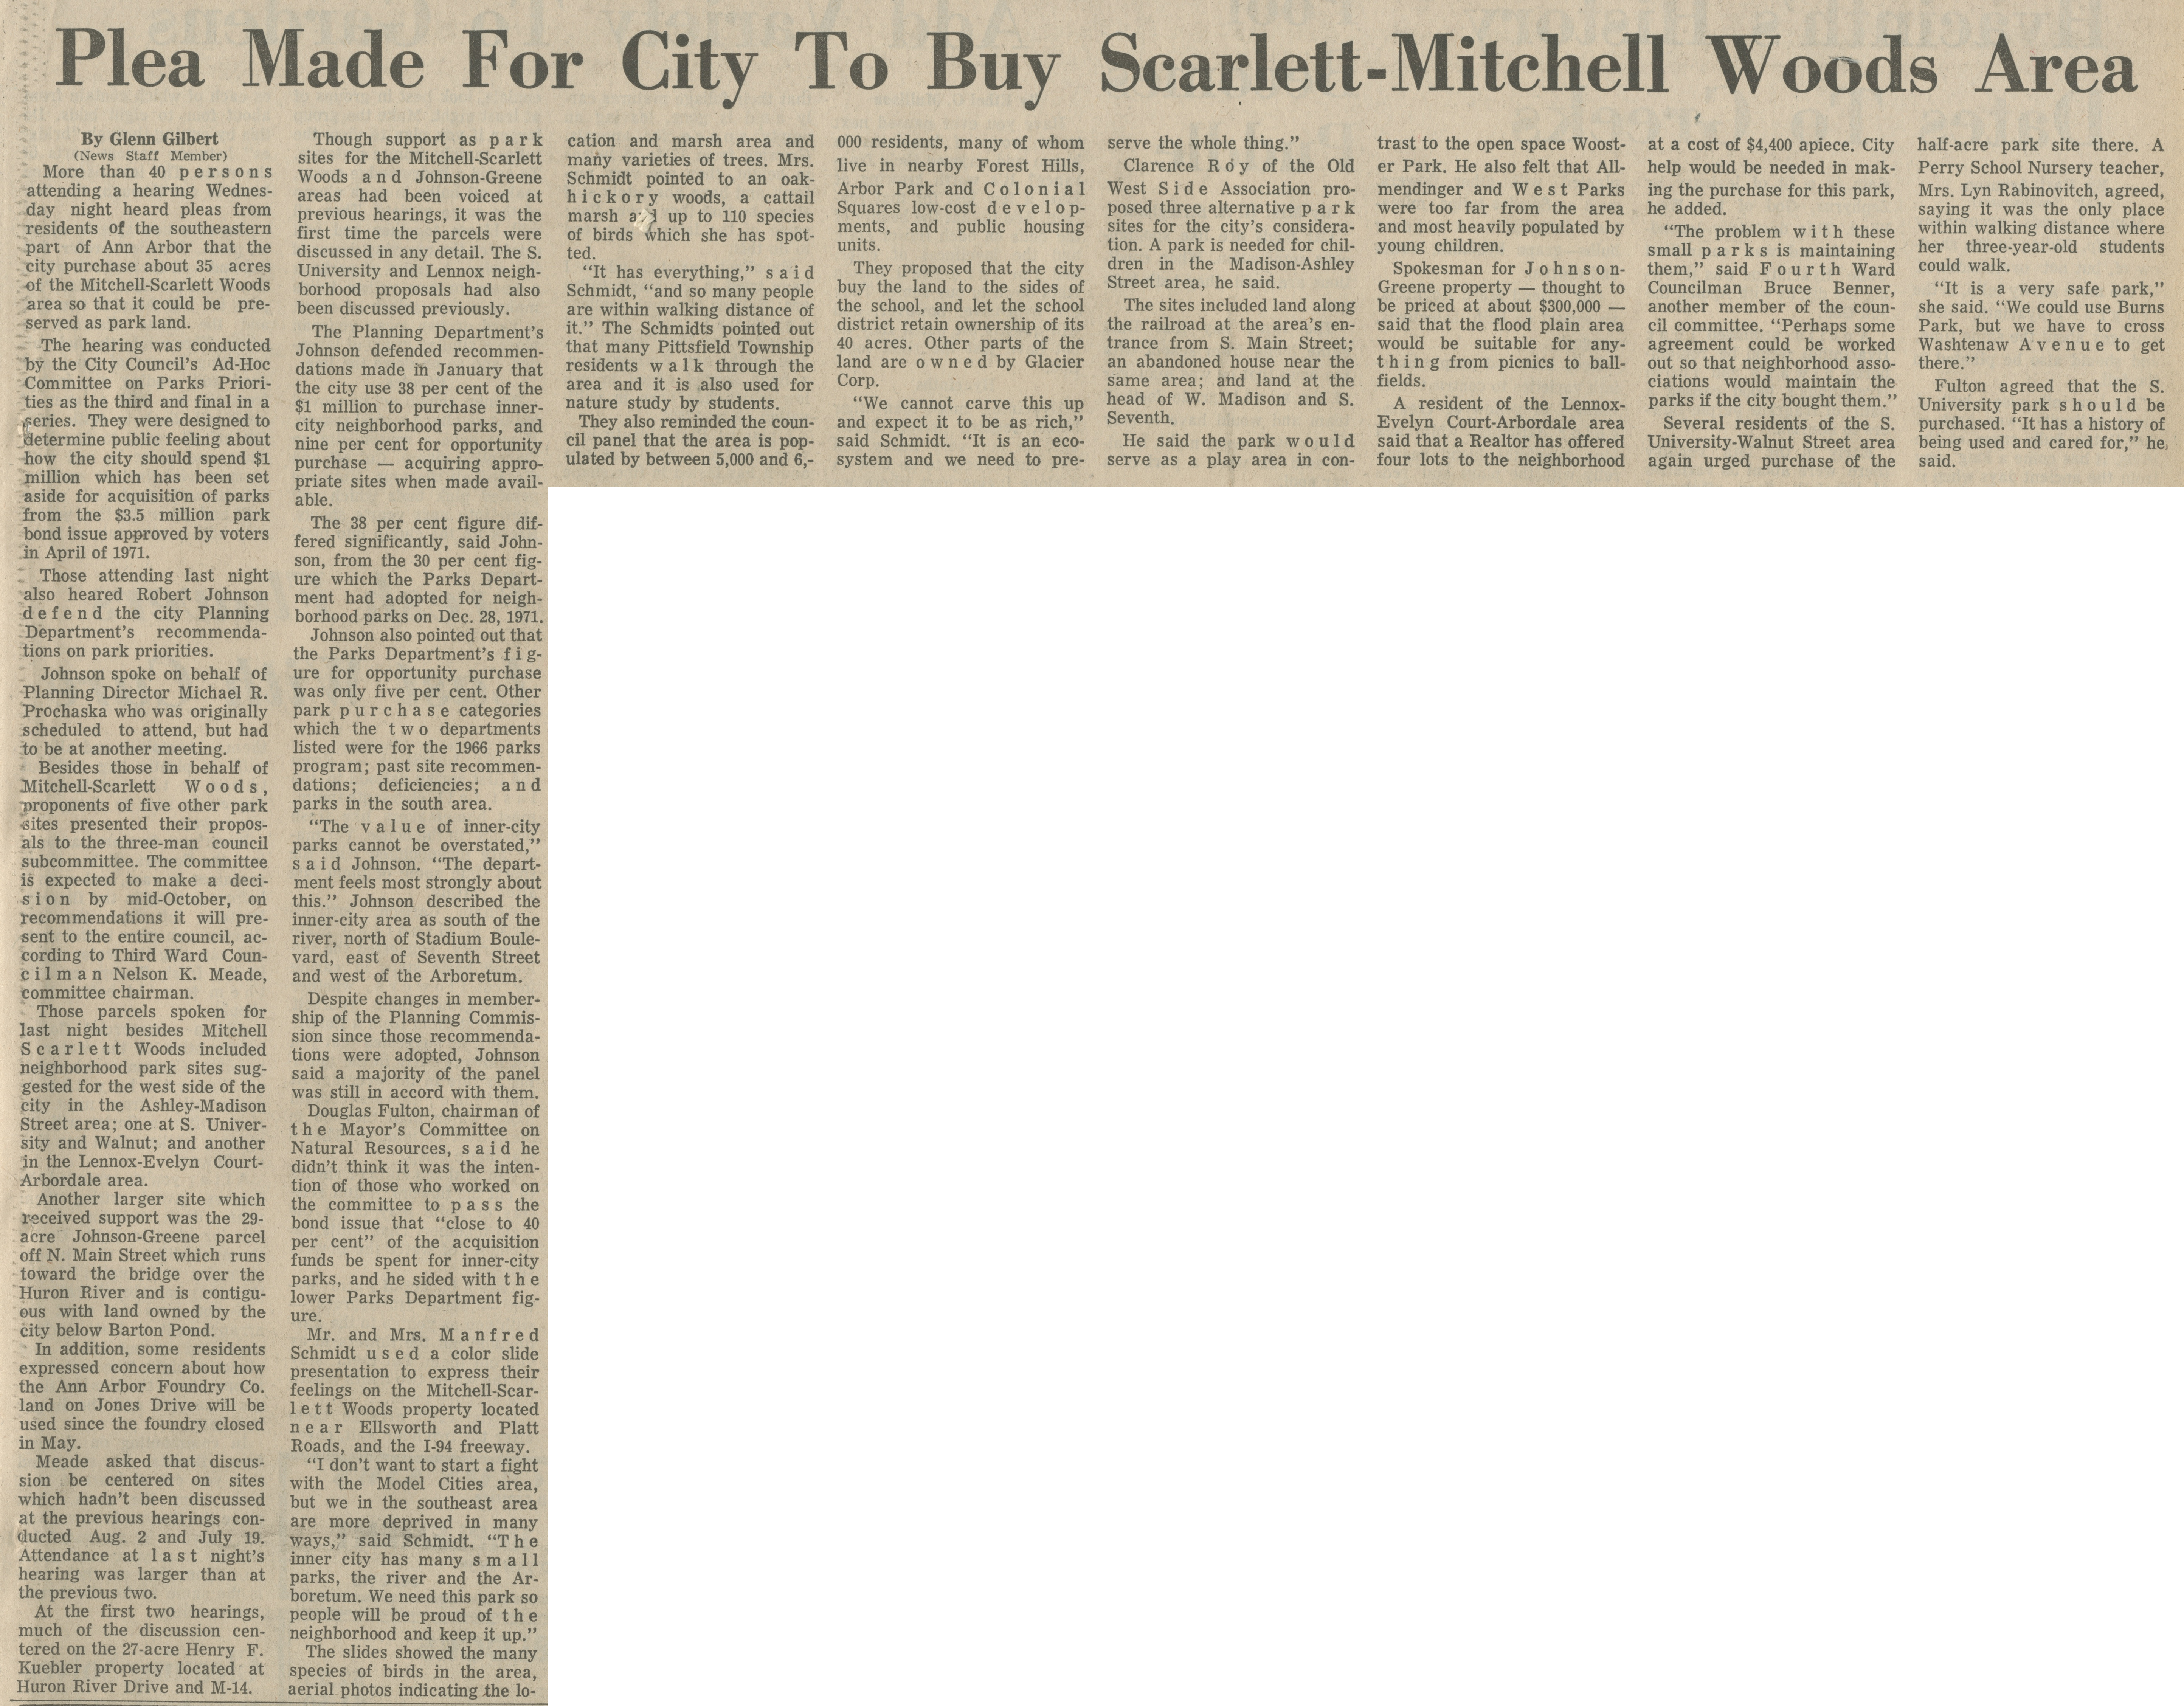 Plea Made For City To Buy Scarlett-Mitchell Woods Area image